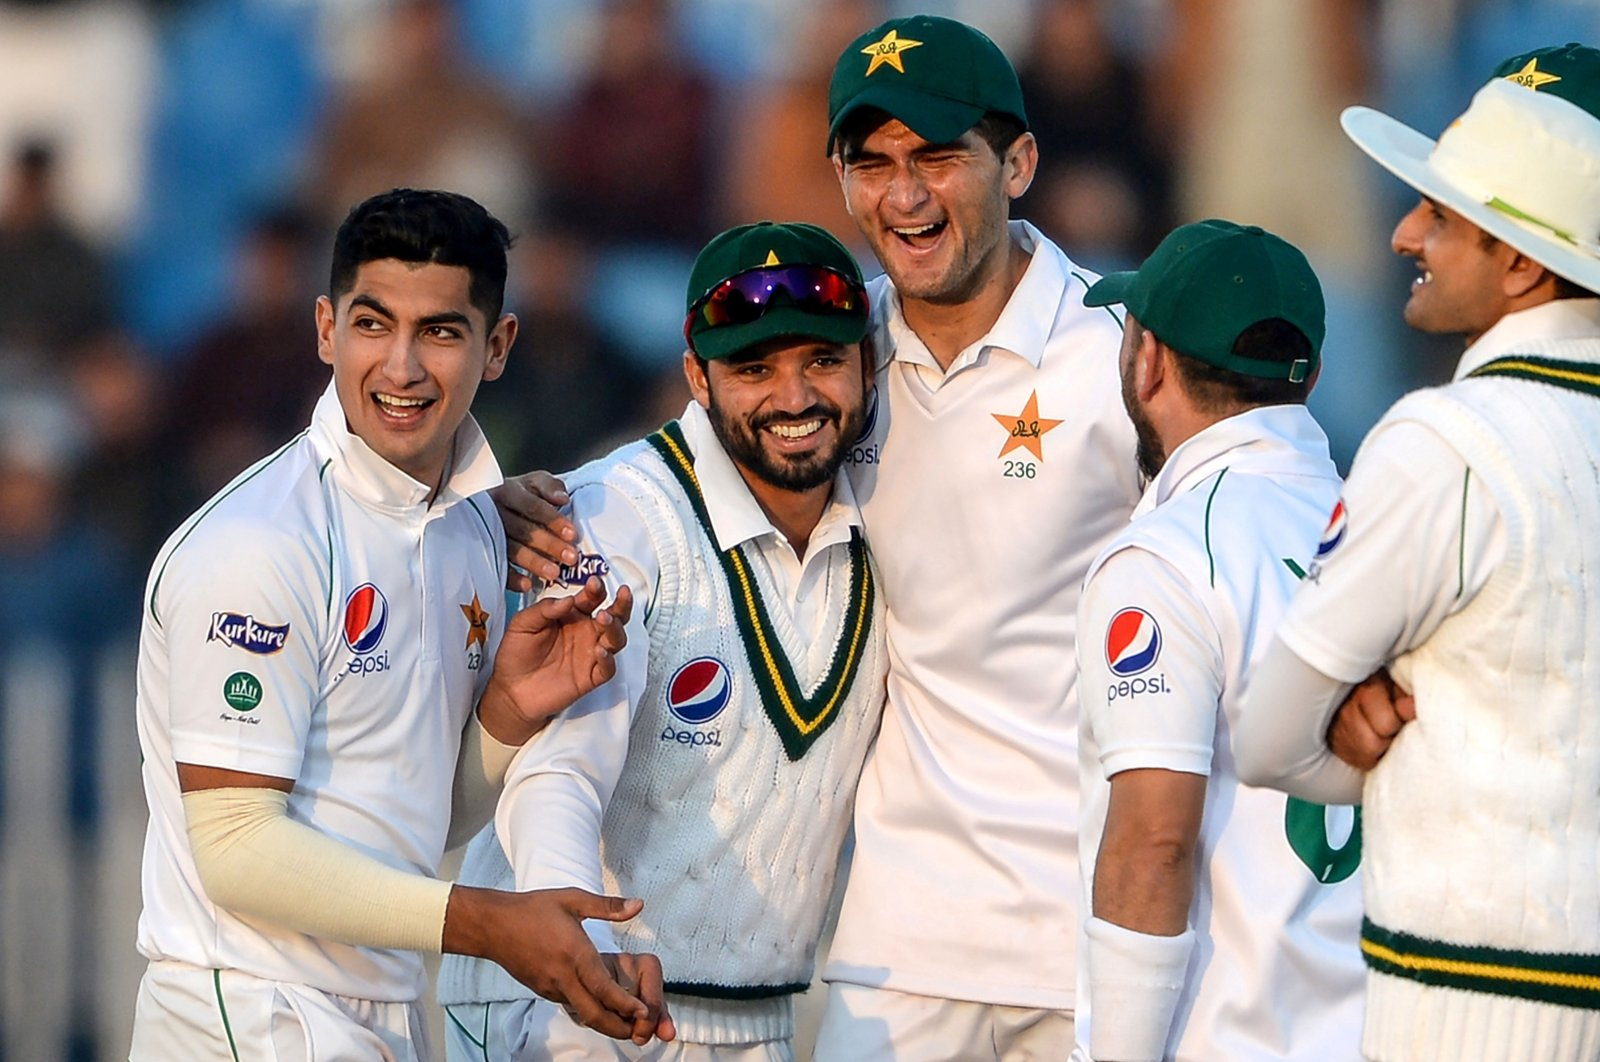 Pakistan's Naseem Shah (2nd L) celebrates with teammates Azhar Ali (L) and Shaheen Shah Afridi (C) after the dismissal of Bangladesh's Mohammad Mithun (unseen) during the first day of the first cricket Test match between Pakistan and Bangladesh at the Rawalpindi Cricket Stadium in Rawalpindi, Pakistan, Feb. 7, 2020.